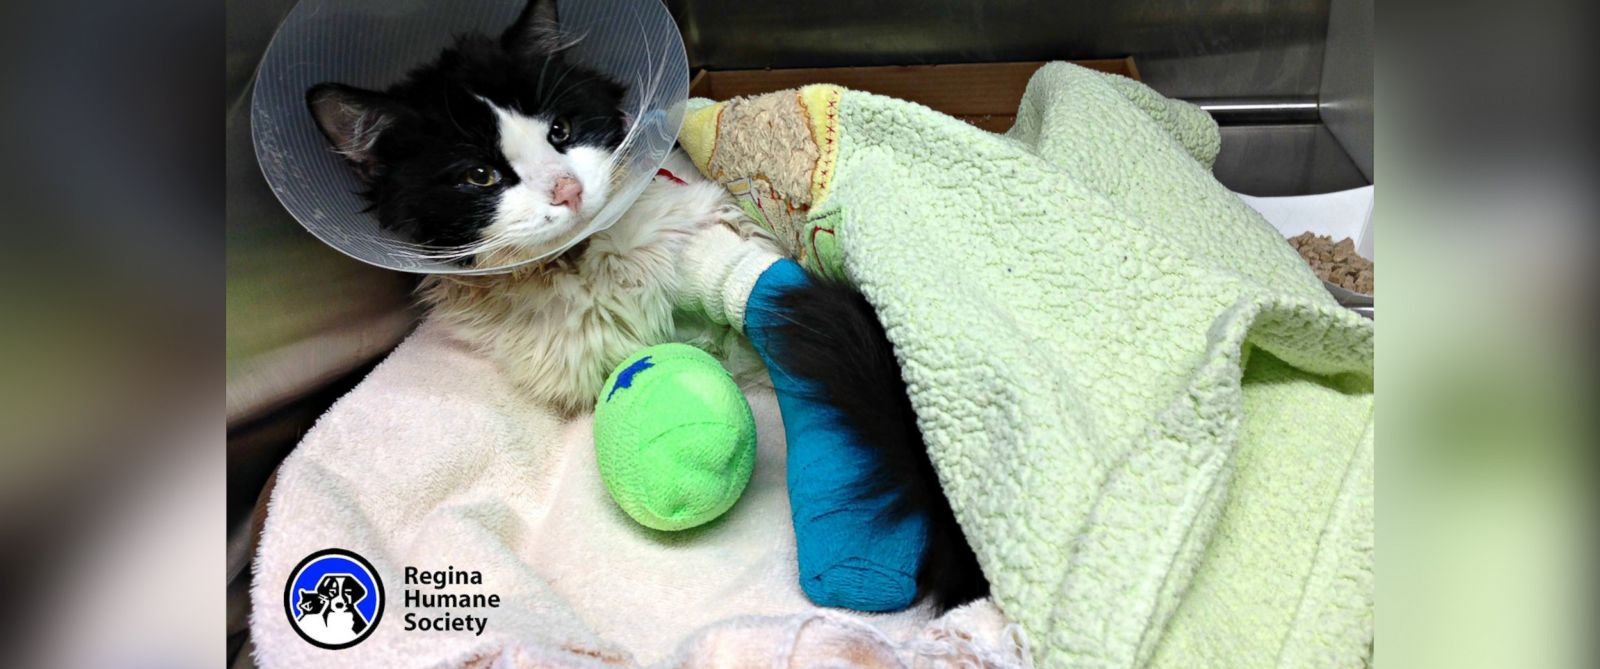 """PHOTO: A cat nicknamed """"Bruce Almighty,"""" seen here in an image posted to the Regina Human Society Facebook page on March 23, 2015, required surgery to remove several toes on his front paws after he was found wrapped in electrical tape."""